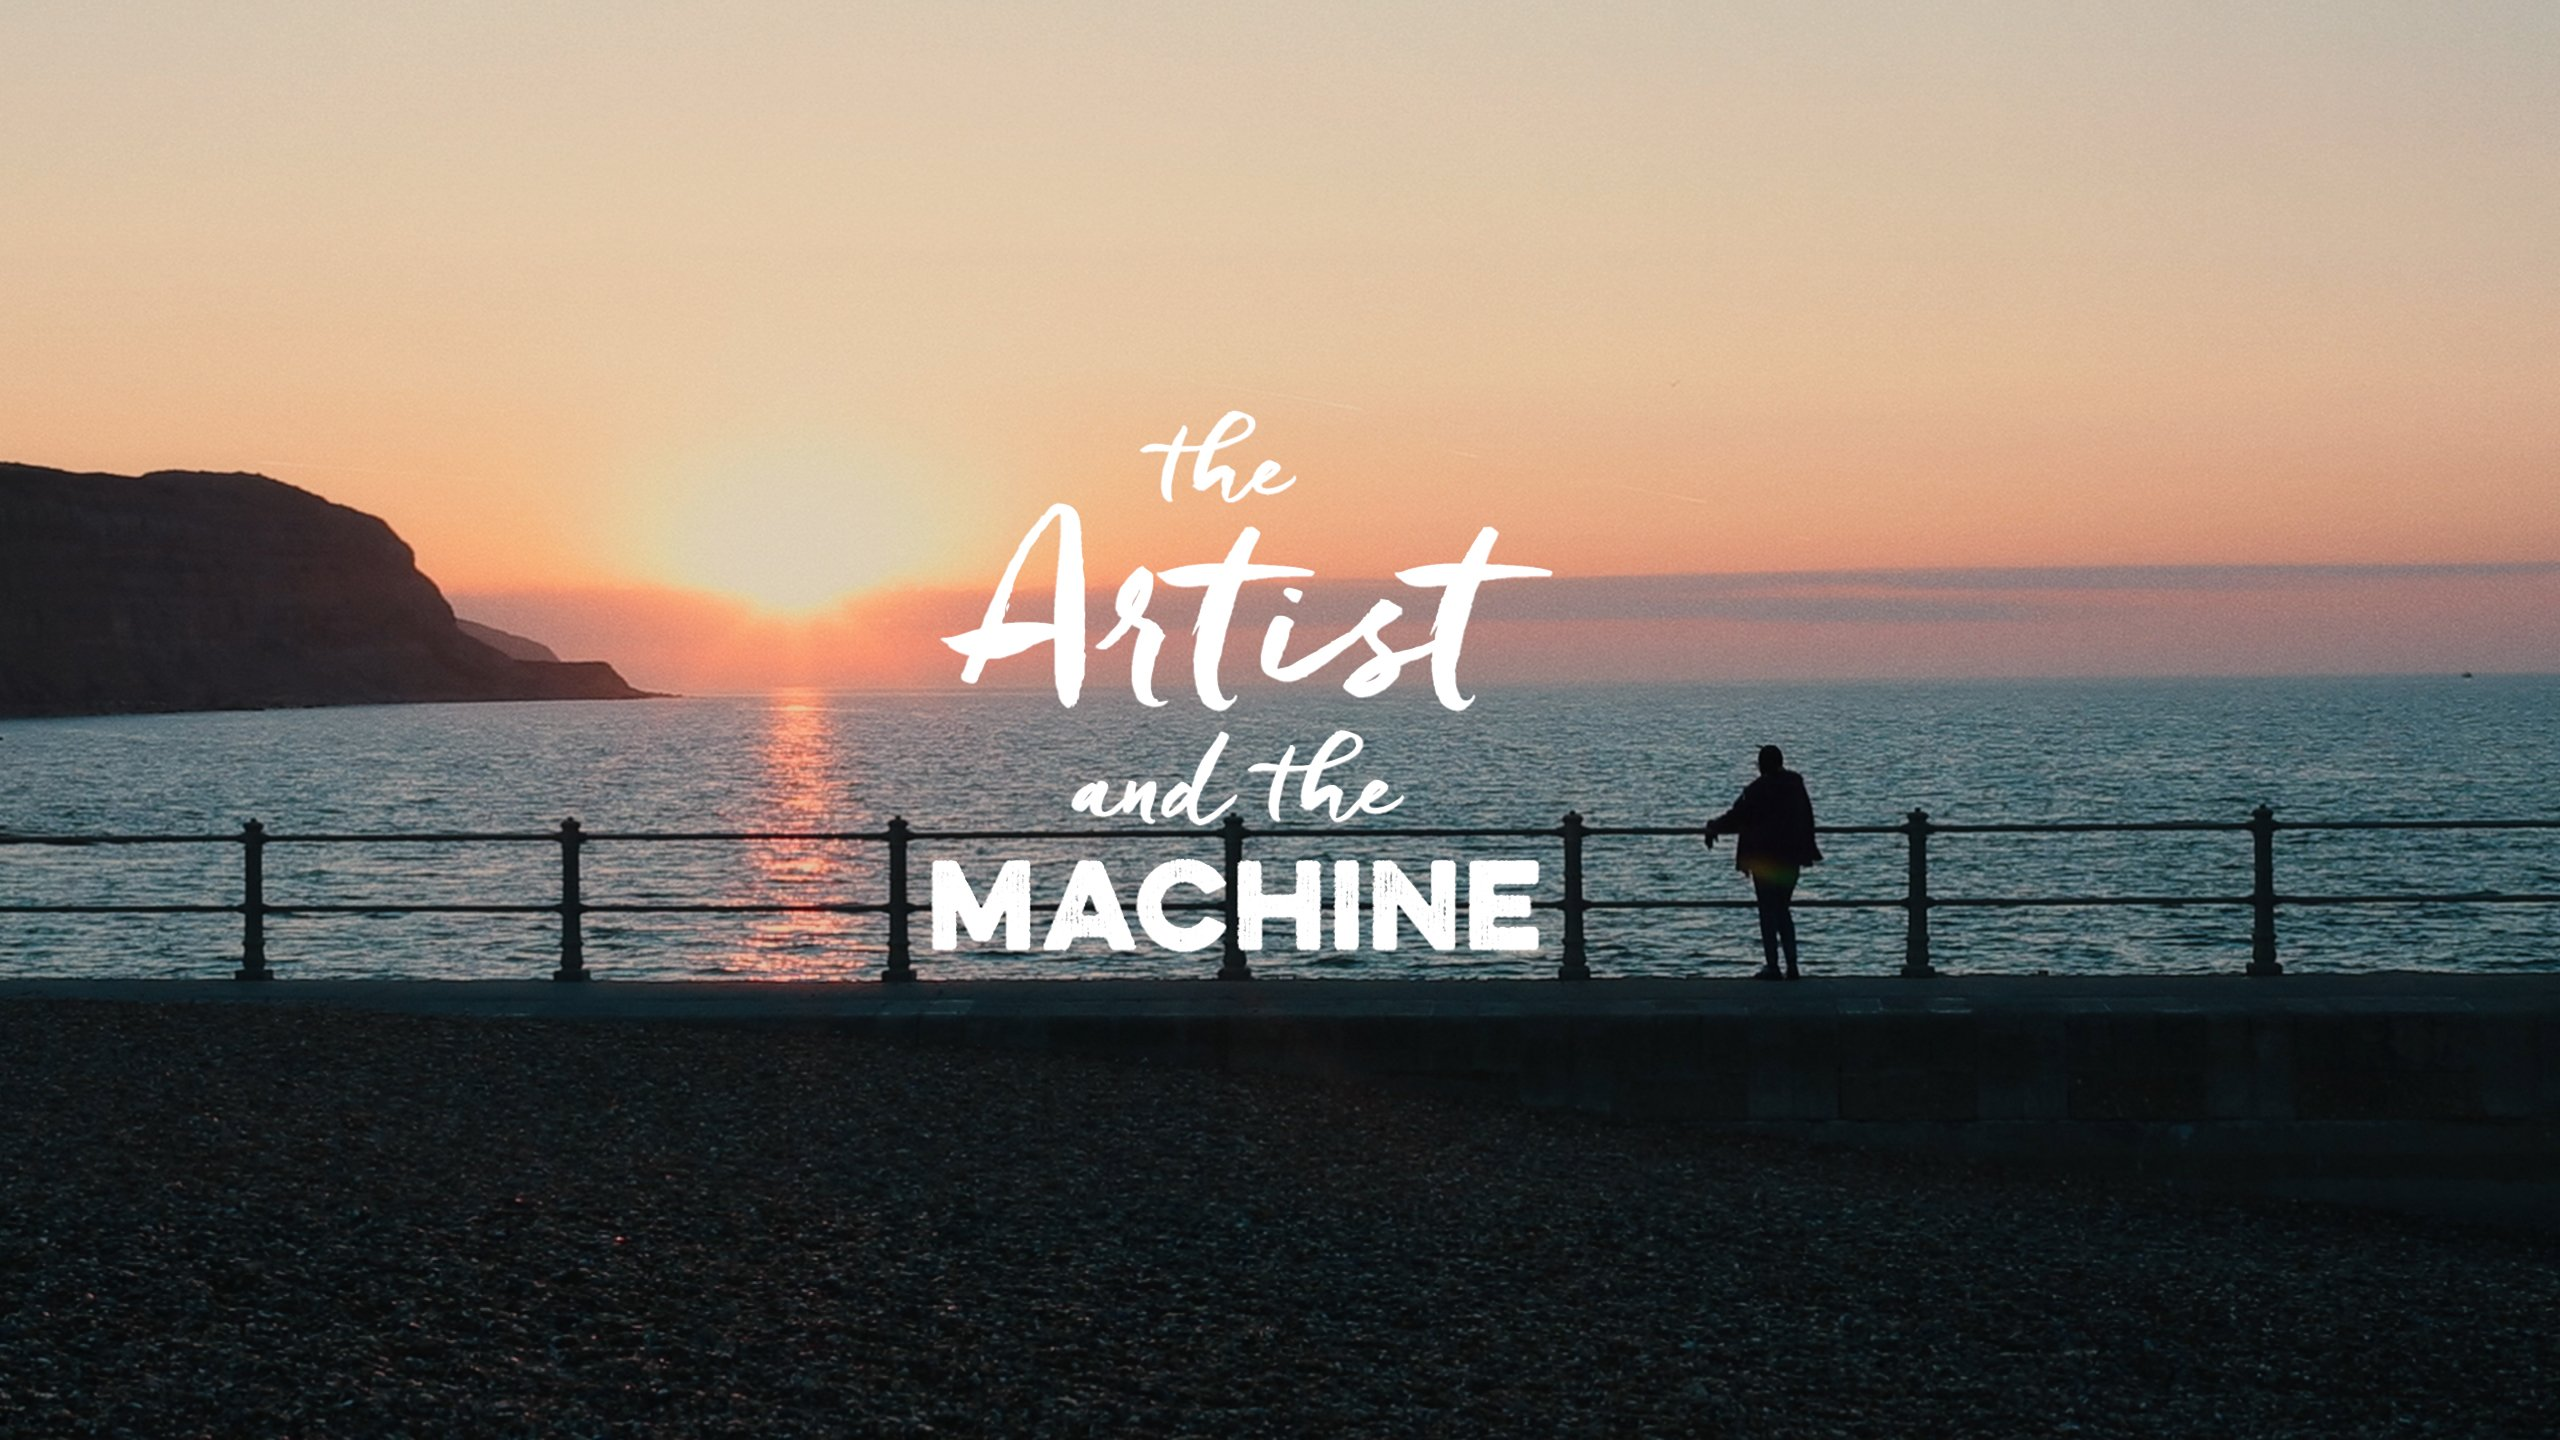 The Artist And The Machine Film Poster